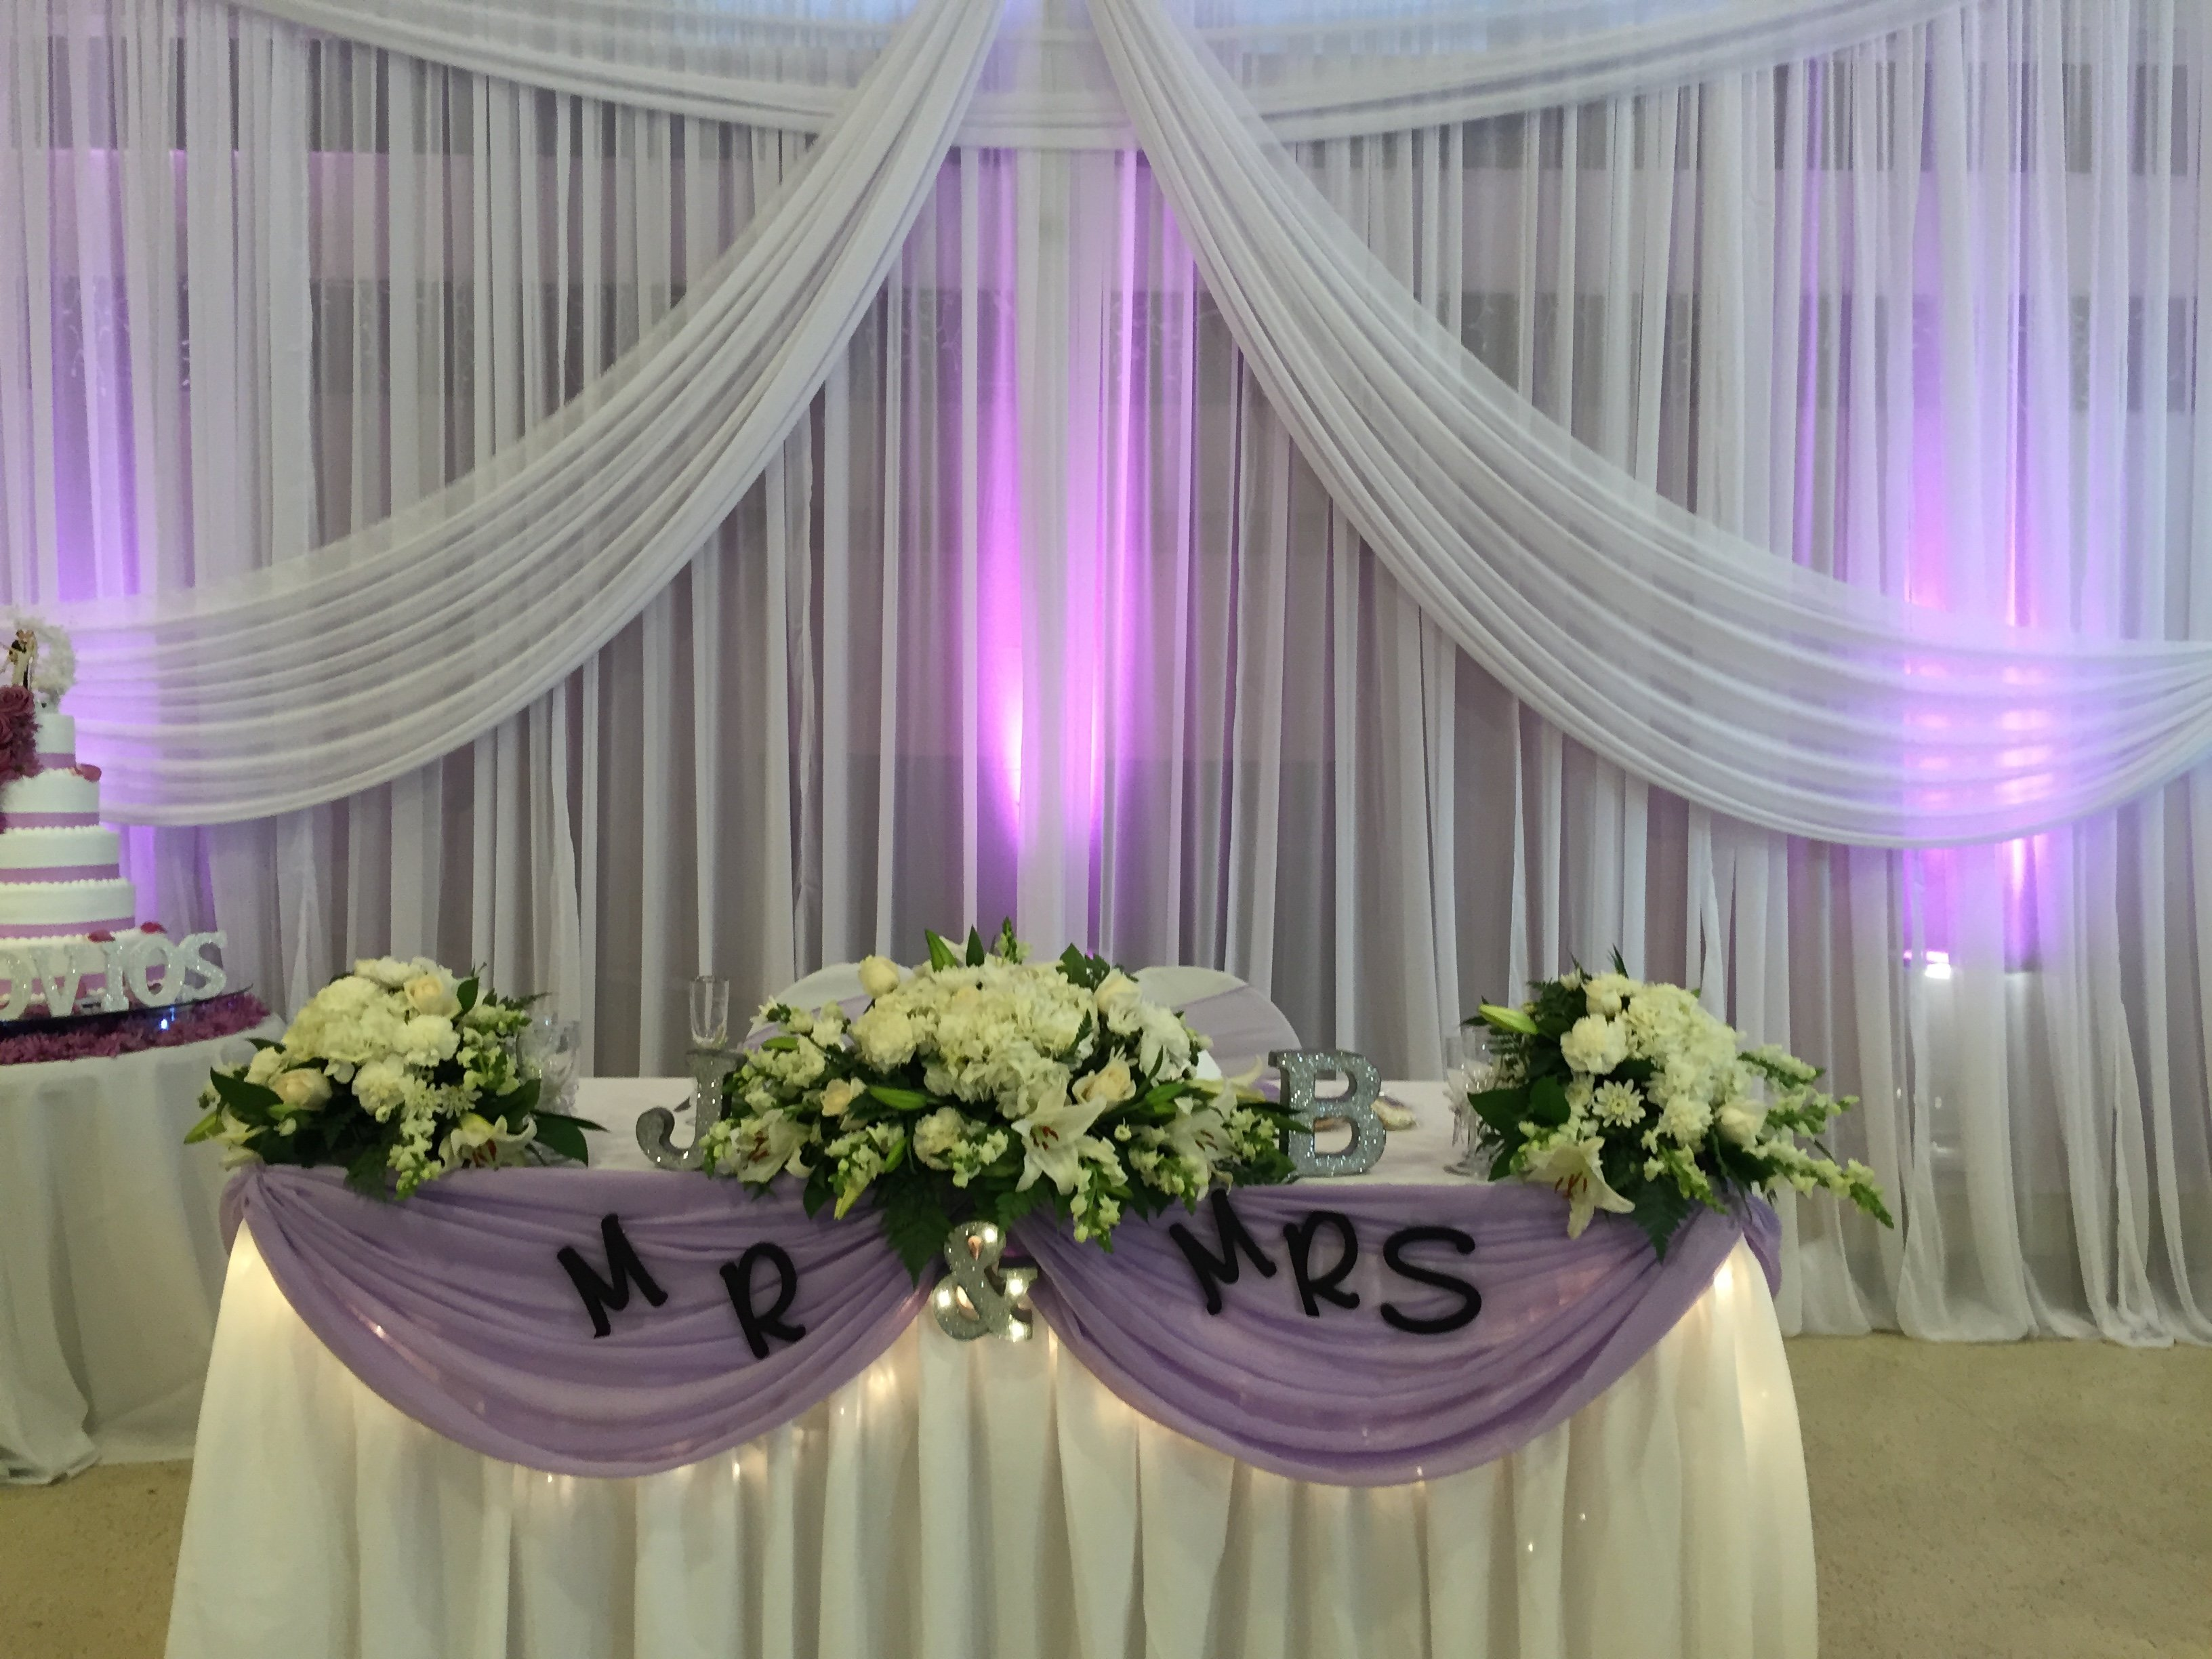 Cornejos event planner wedding planning services san jose browse through the images of some of our completed events wedding decoration junglespirit Image collections